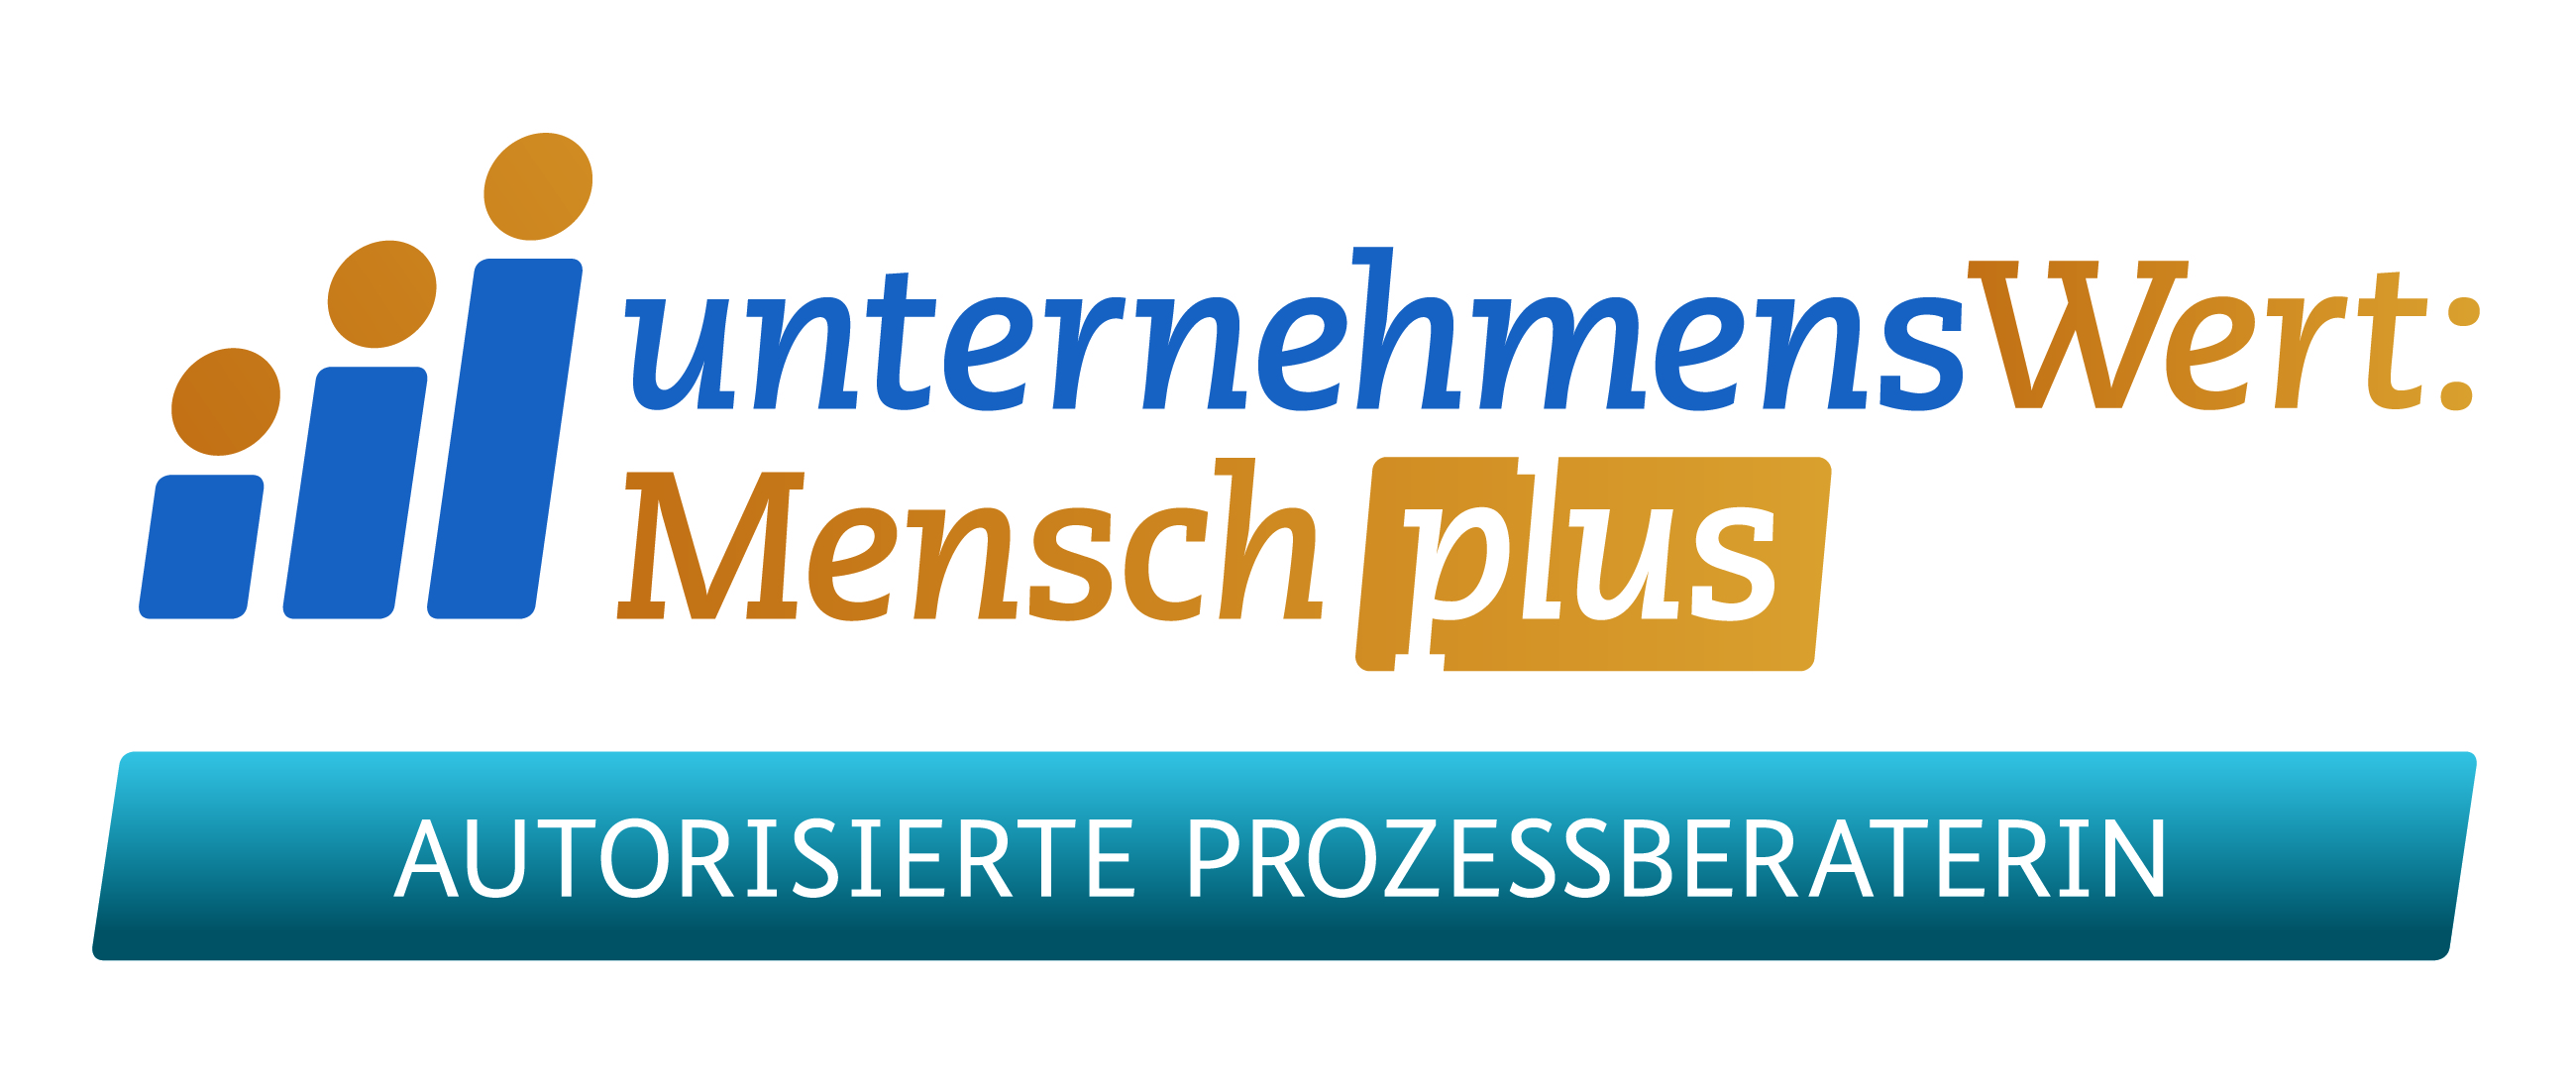 Angebot uWM plus Prozessberaterin Summary